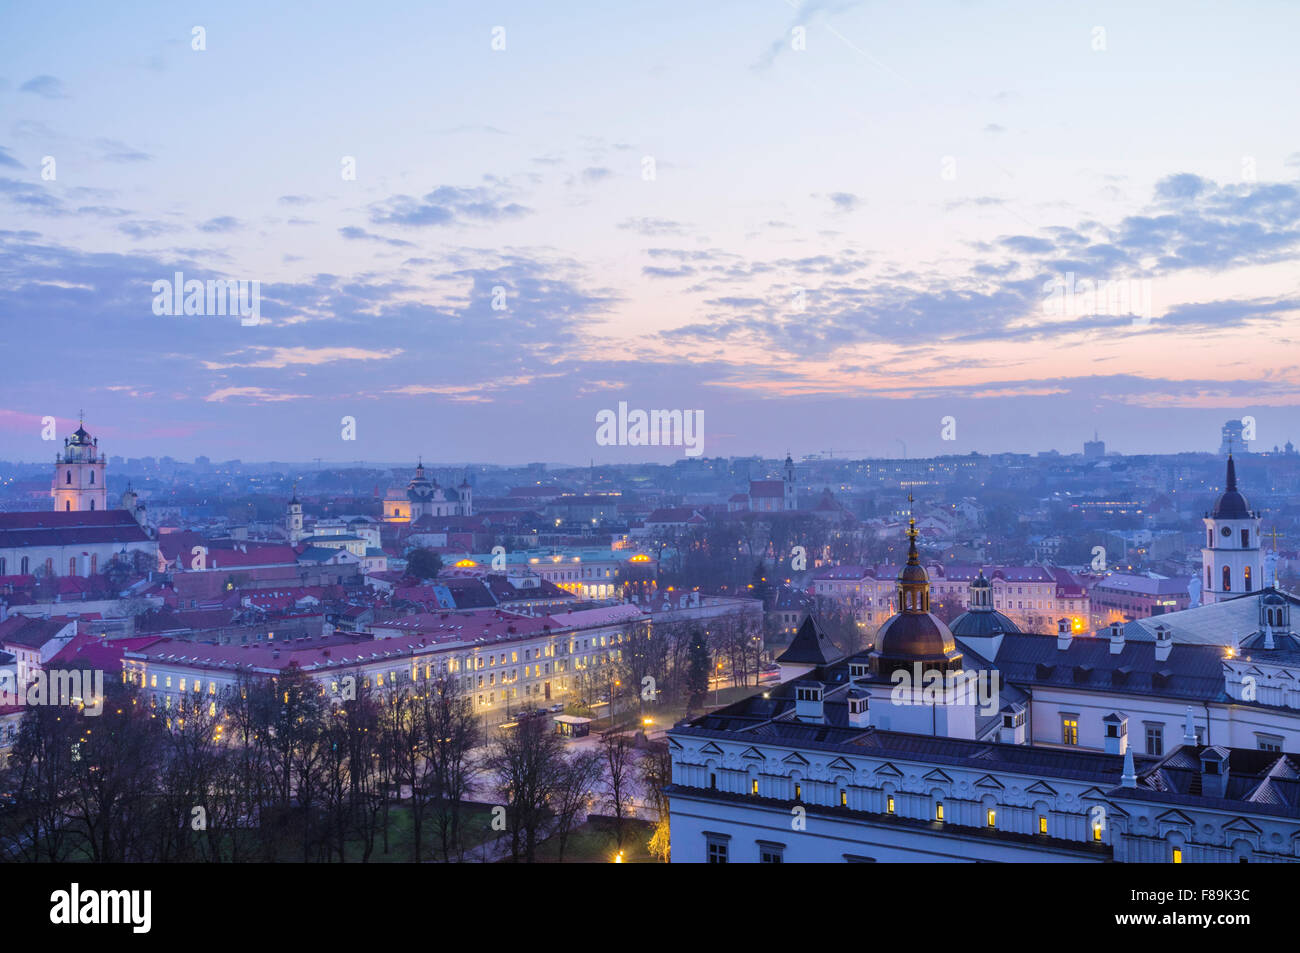 Old town overview at dusk and Grand Dukes Palace. Vilnius, Lithuania, Europe - Stock Image